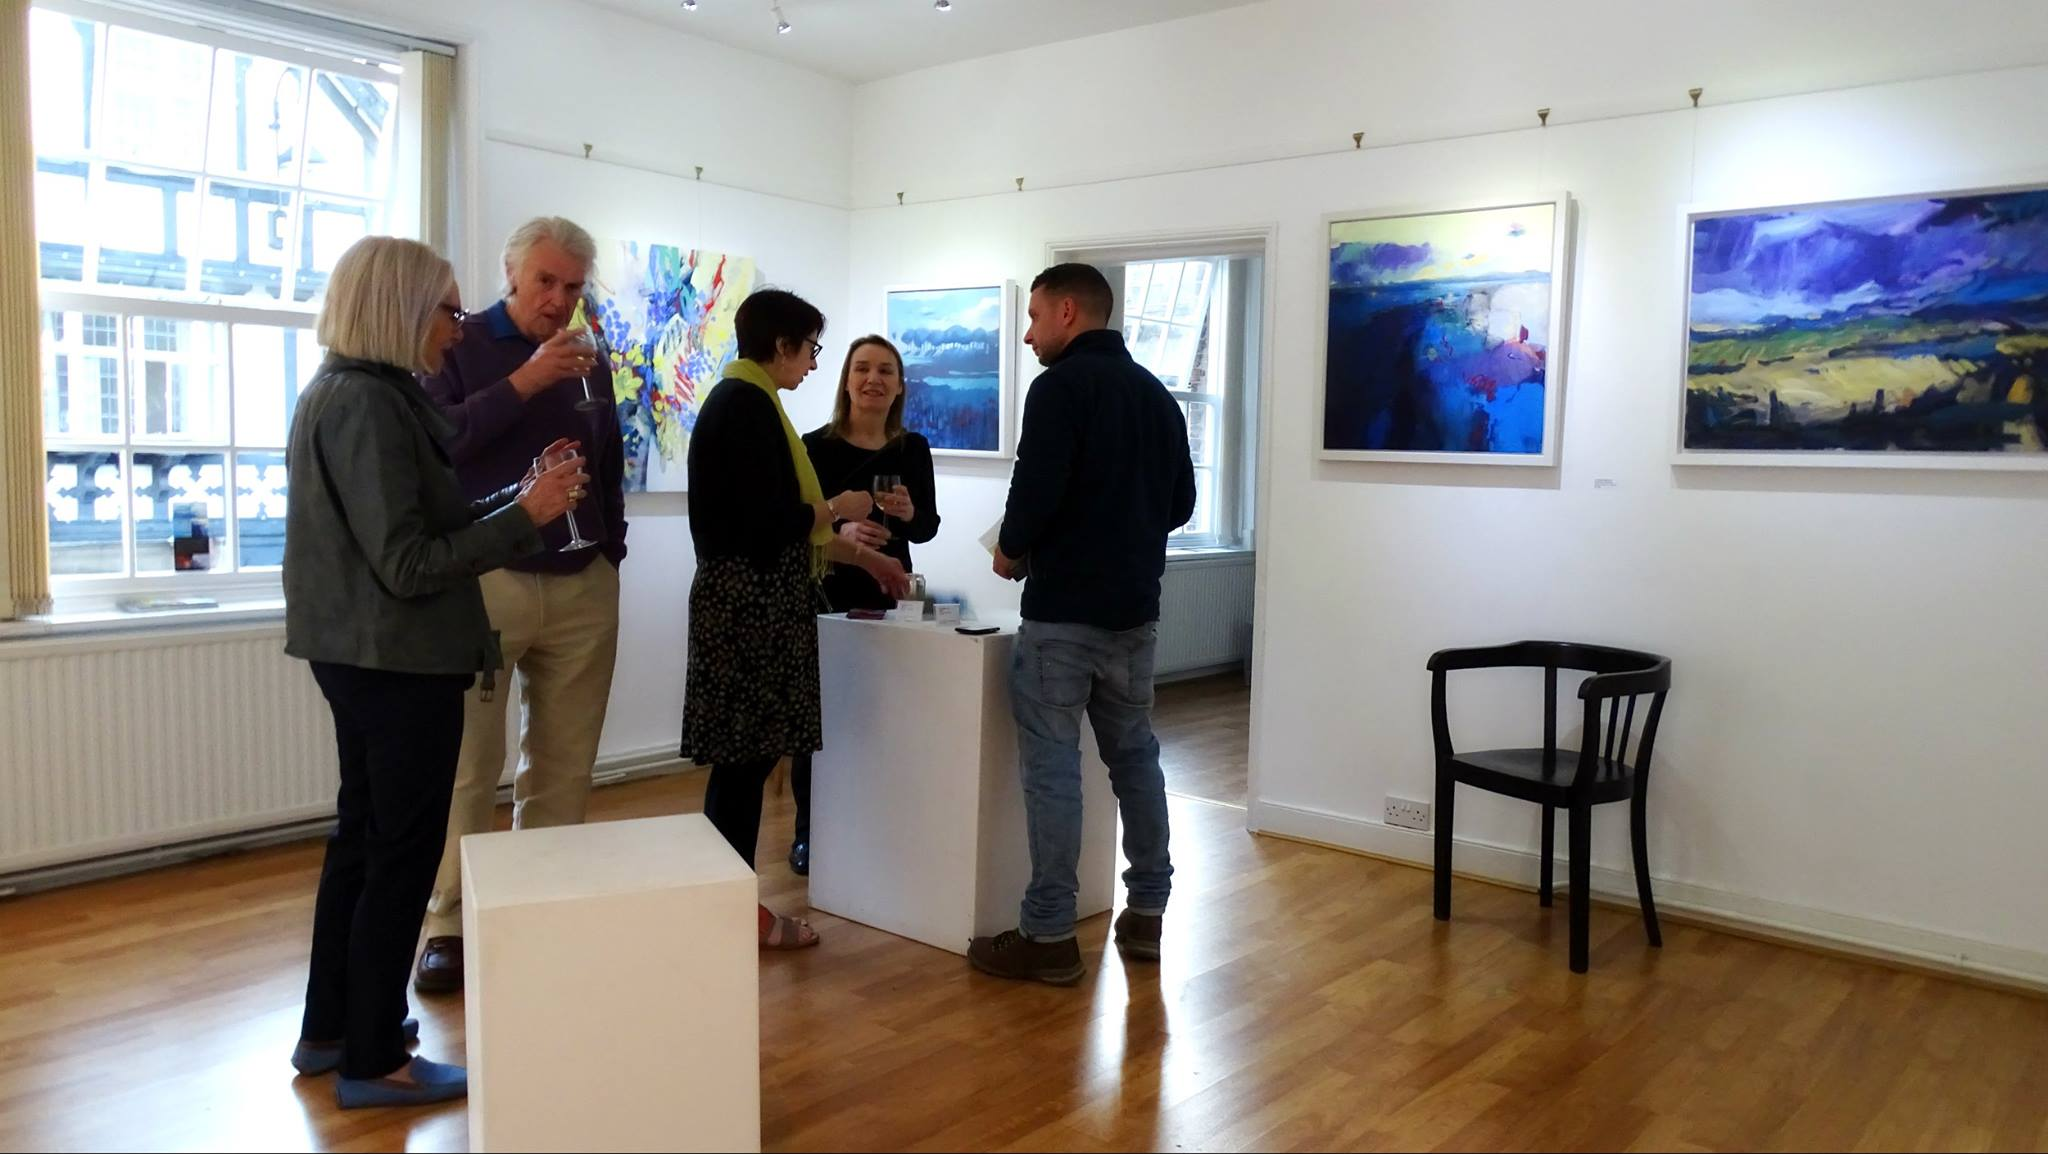 Chester Art Centre always hosts interesting art and performing art exhibitions throughout the year.